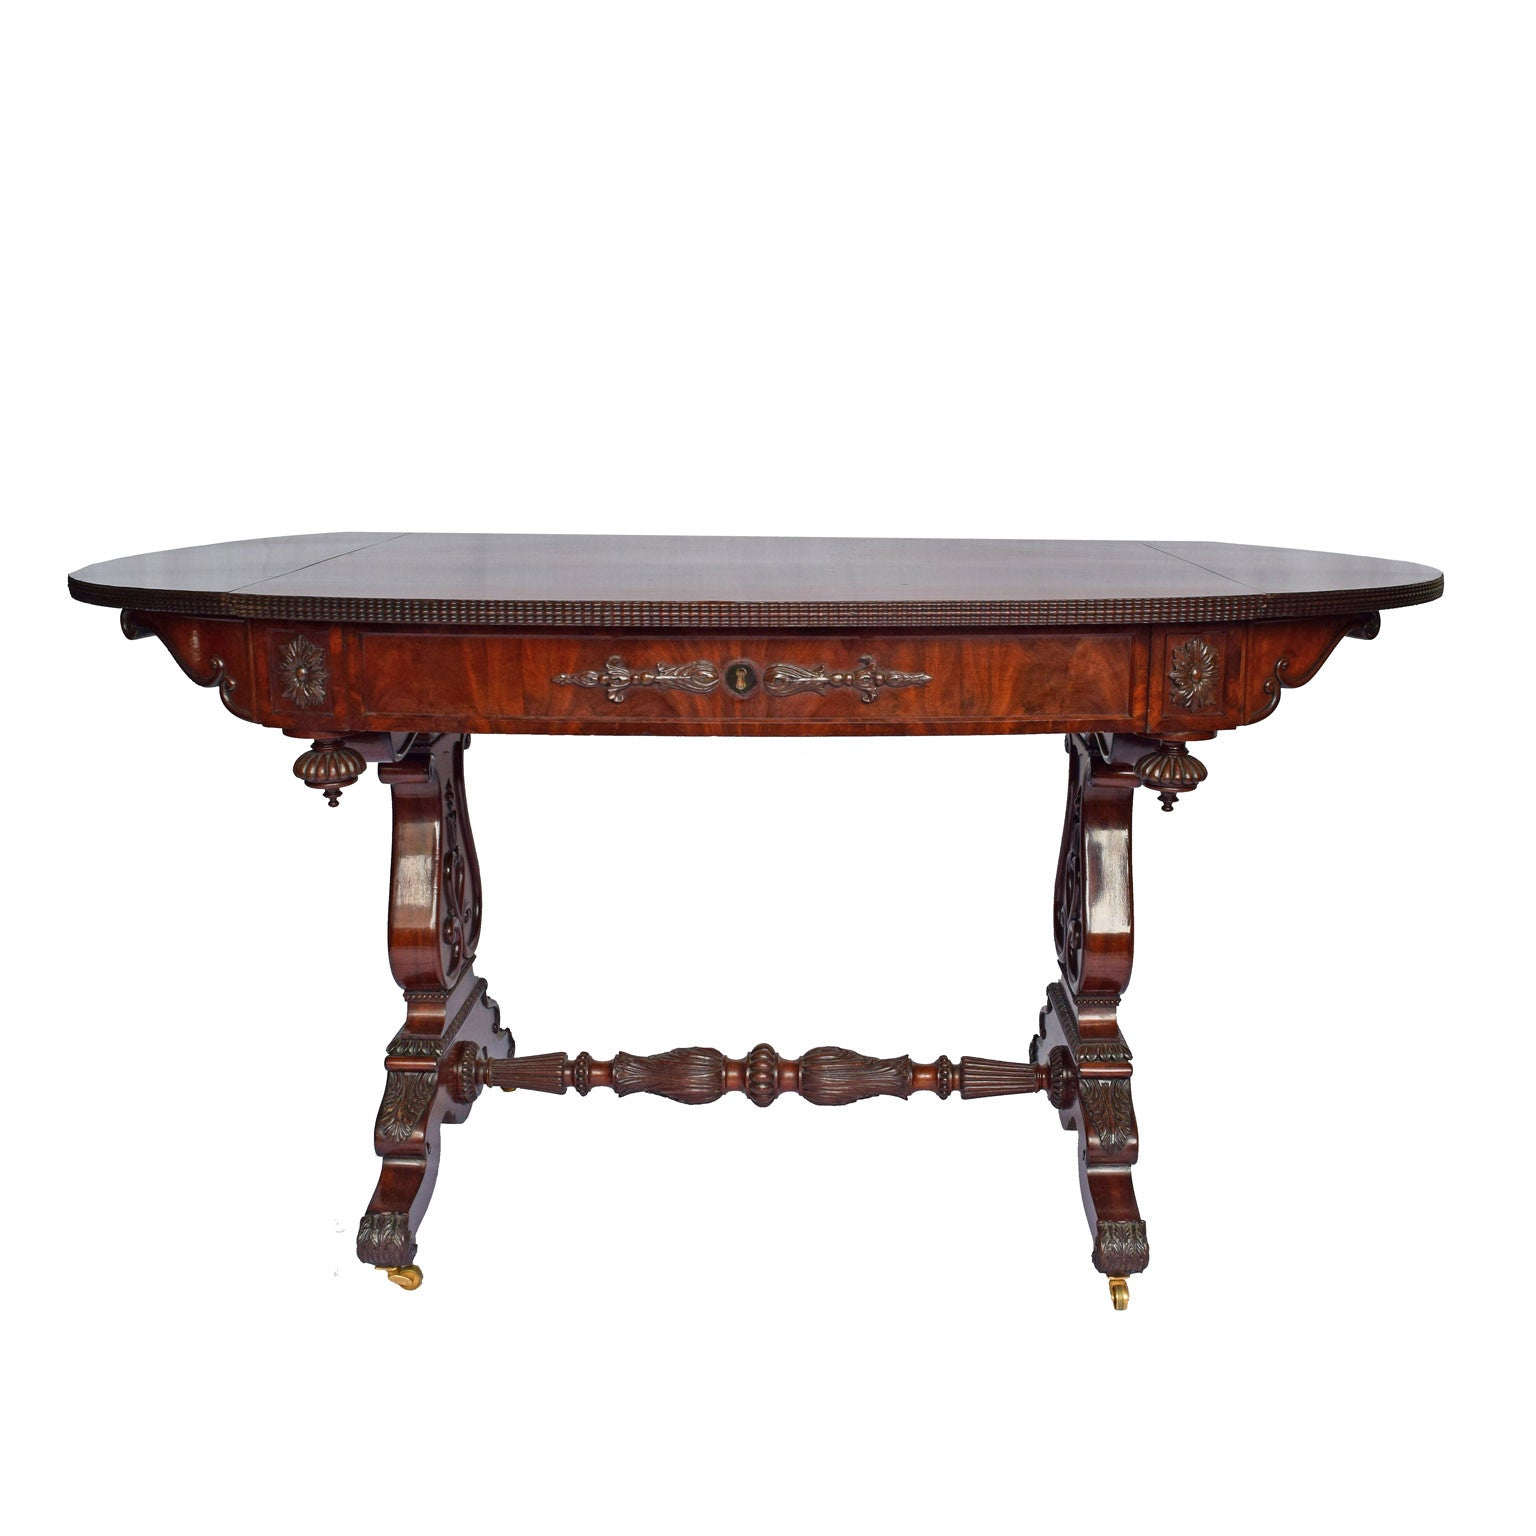 A rare mahogany Sofa Table by Friedrich Wilhelm IV period [1840–1861]